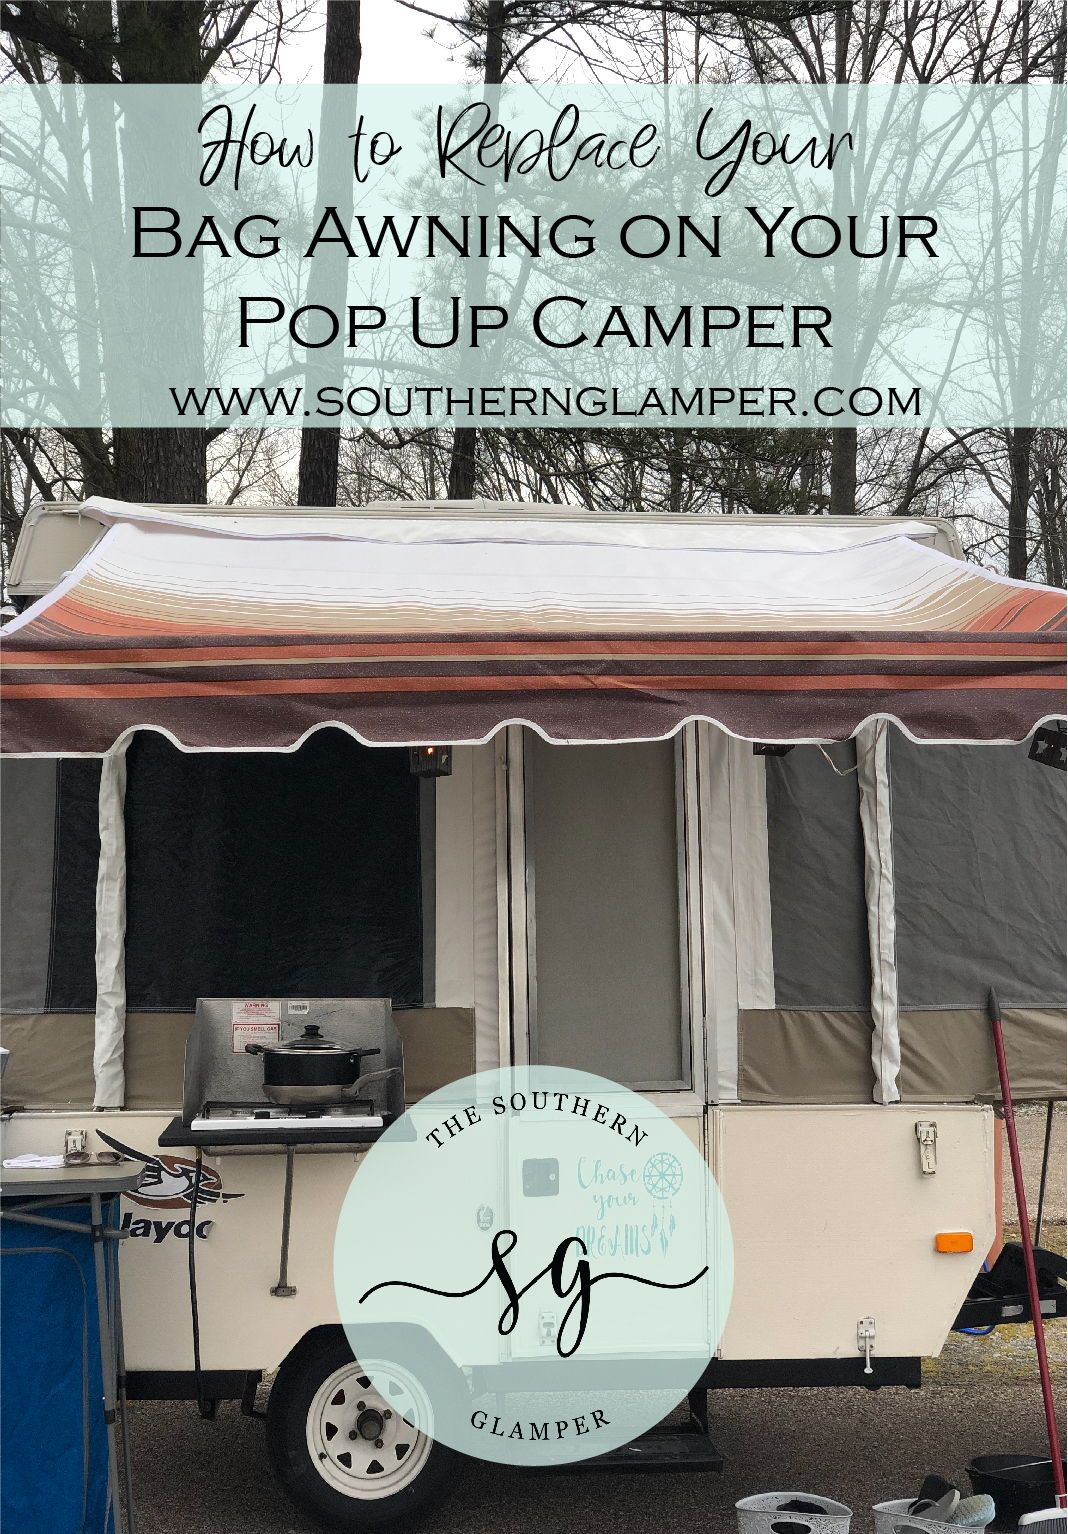 Replace Your Bag Awning On Your Pop Up Camper Pop Up Tent Trailer Camper Awnings Popup Camper